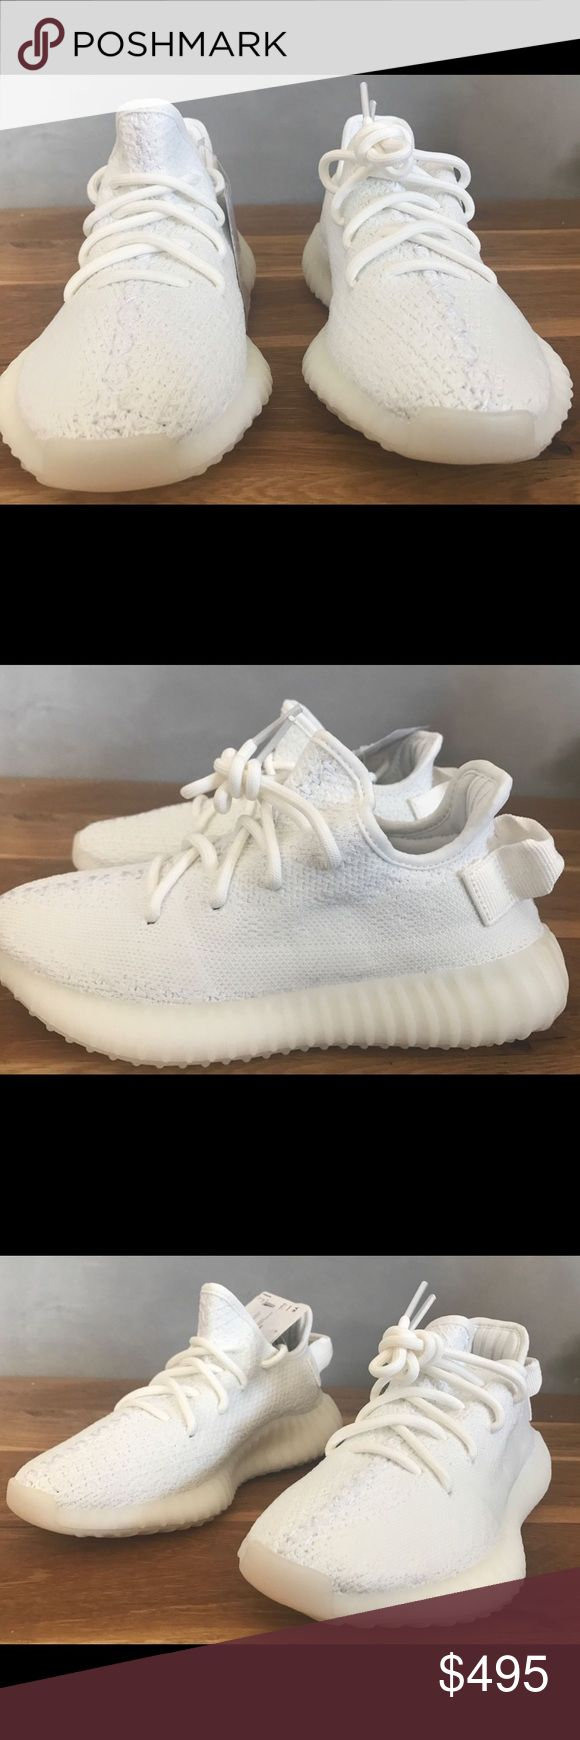 Adidas Yeezy Boost 350 V2 Cream Men's CP9366 100% Adidas X Kanye West Yeezy Boost 350 V2 Cream White SPLY Kanye West Men's CP9366 100%AUTHENTIC Brand New In Box Never Worn adidas Shoes Athletic Shoes